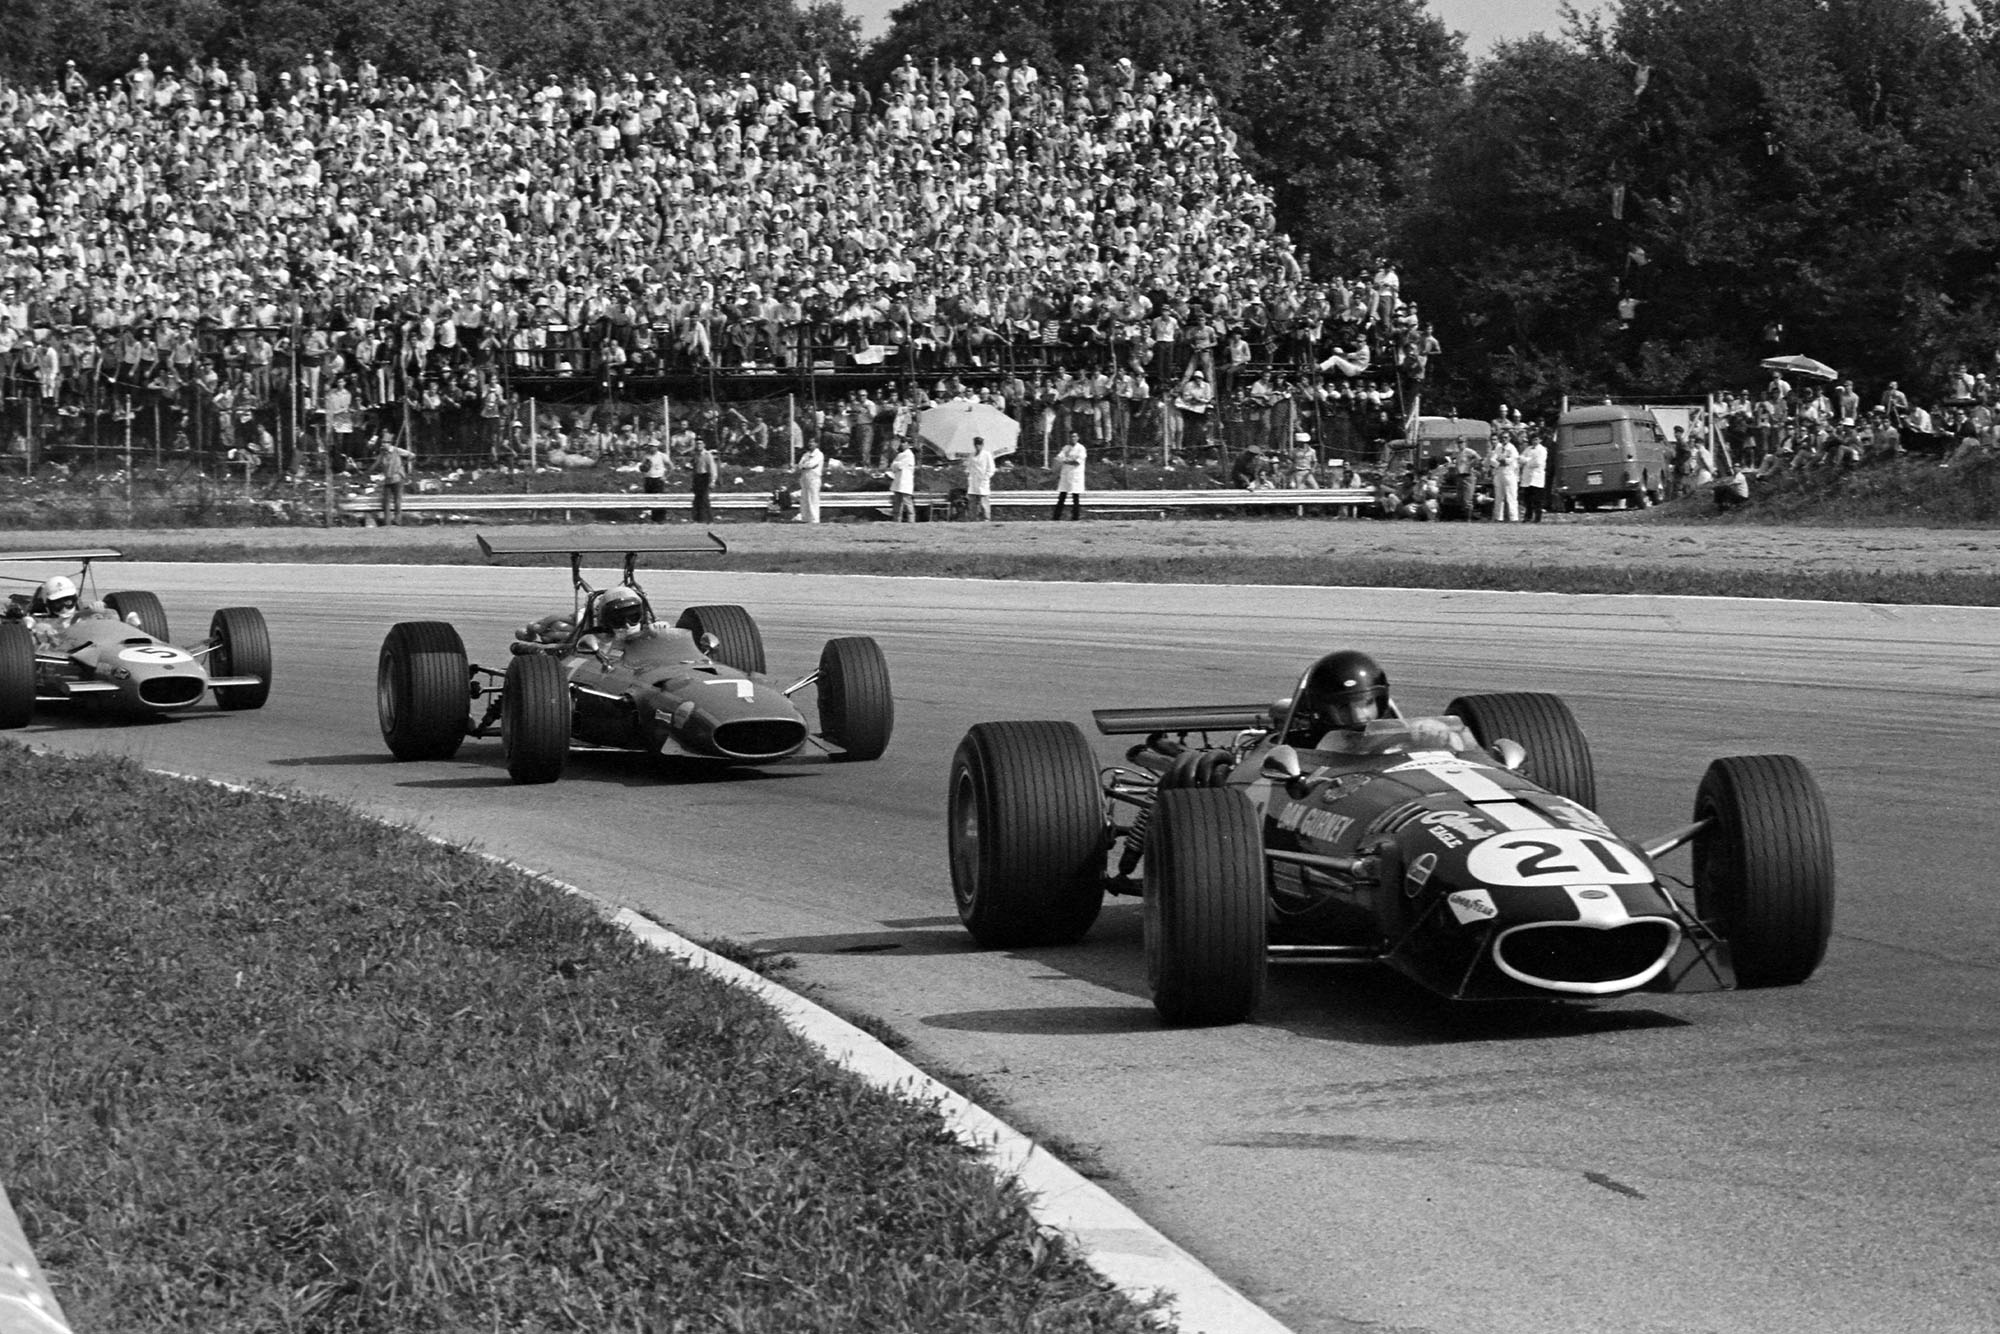 Dan Gurney, Eagle T1G Weslake, leads Derek Bell, Ferrari 312, and Johnny Servoz-Gavin, Matra MS10 Ford.